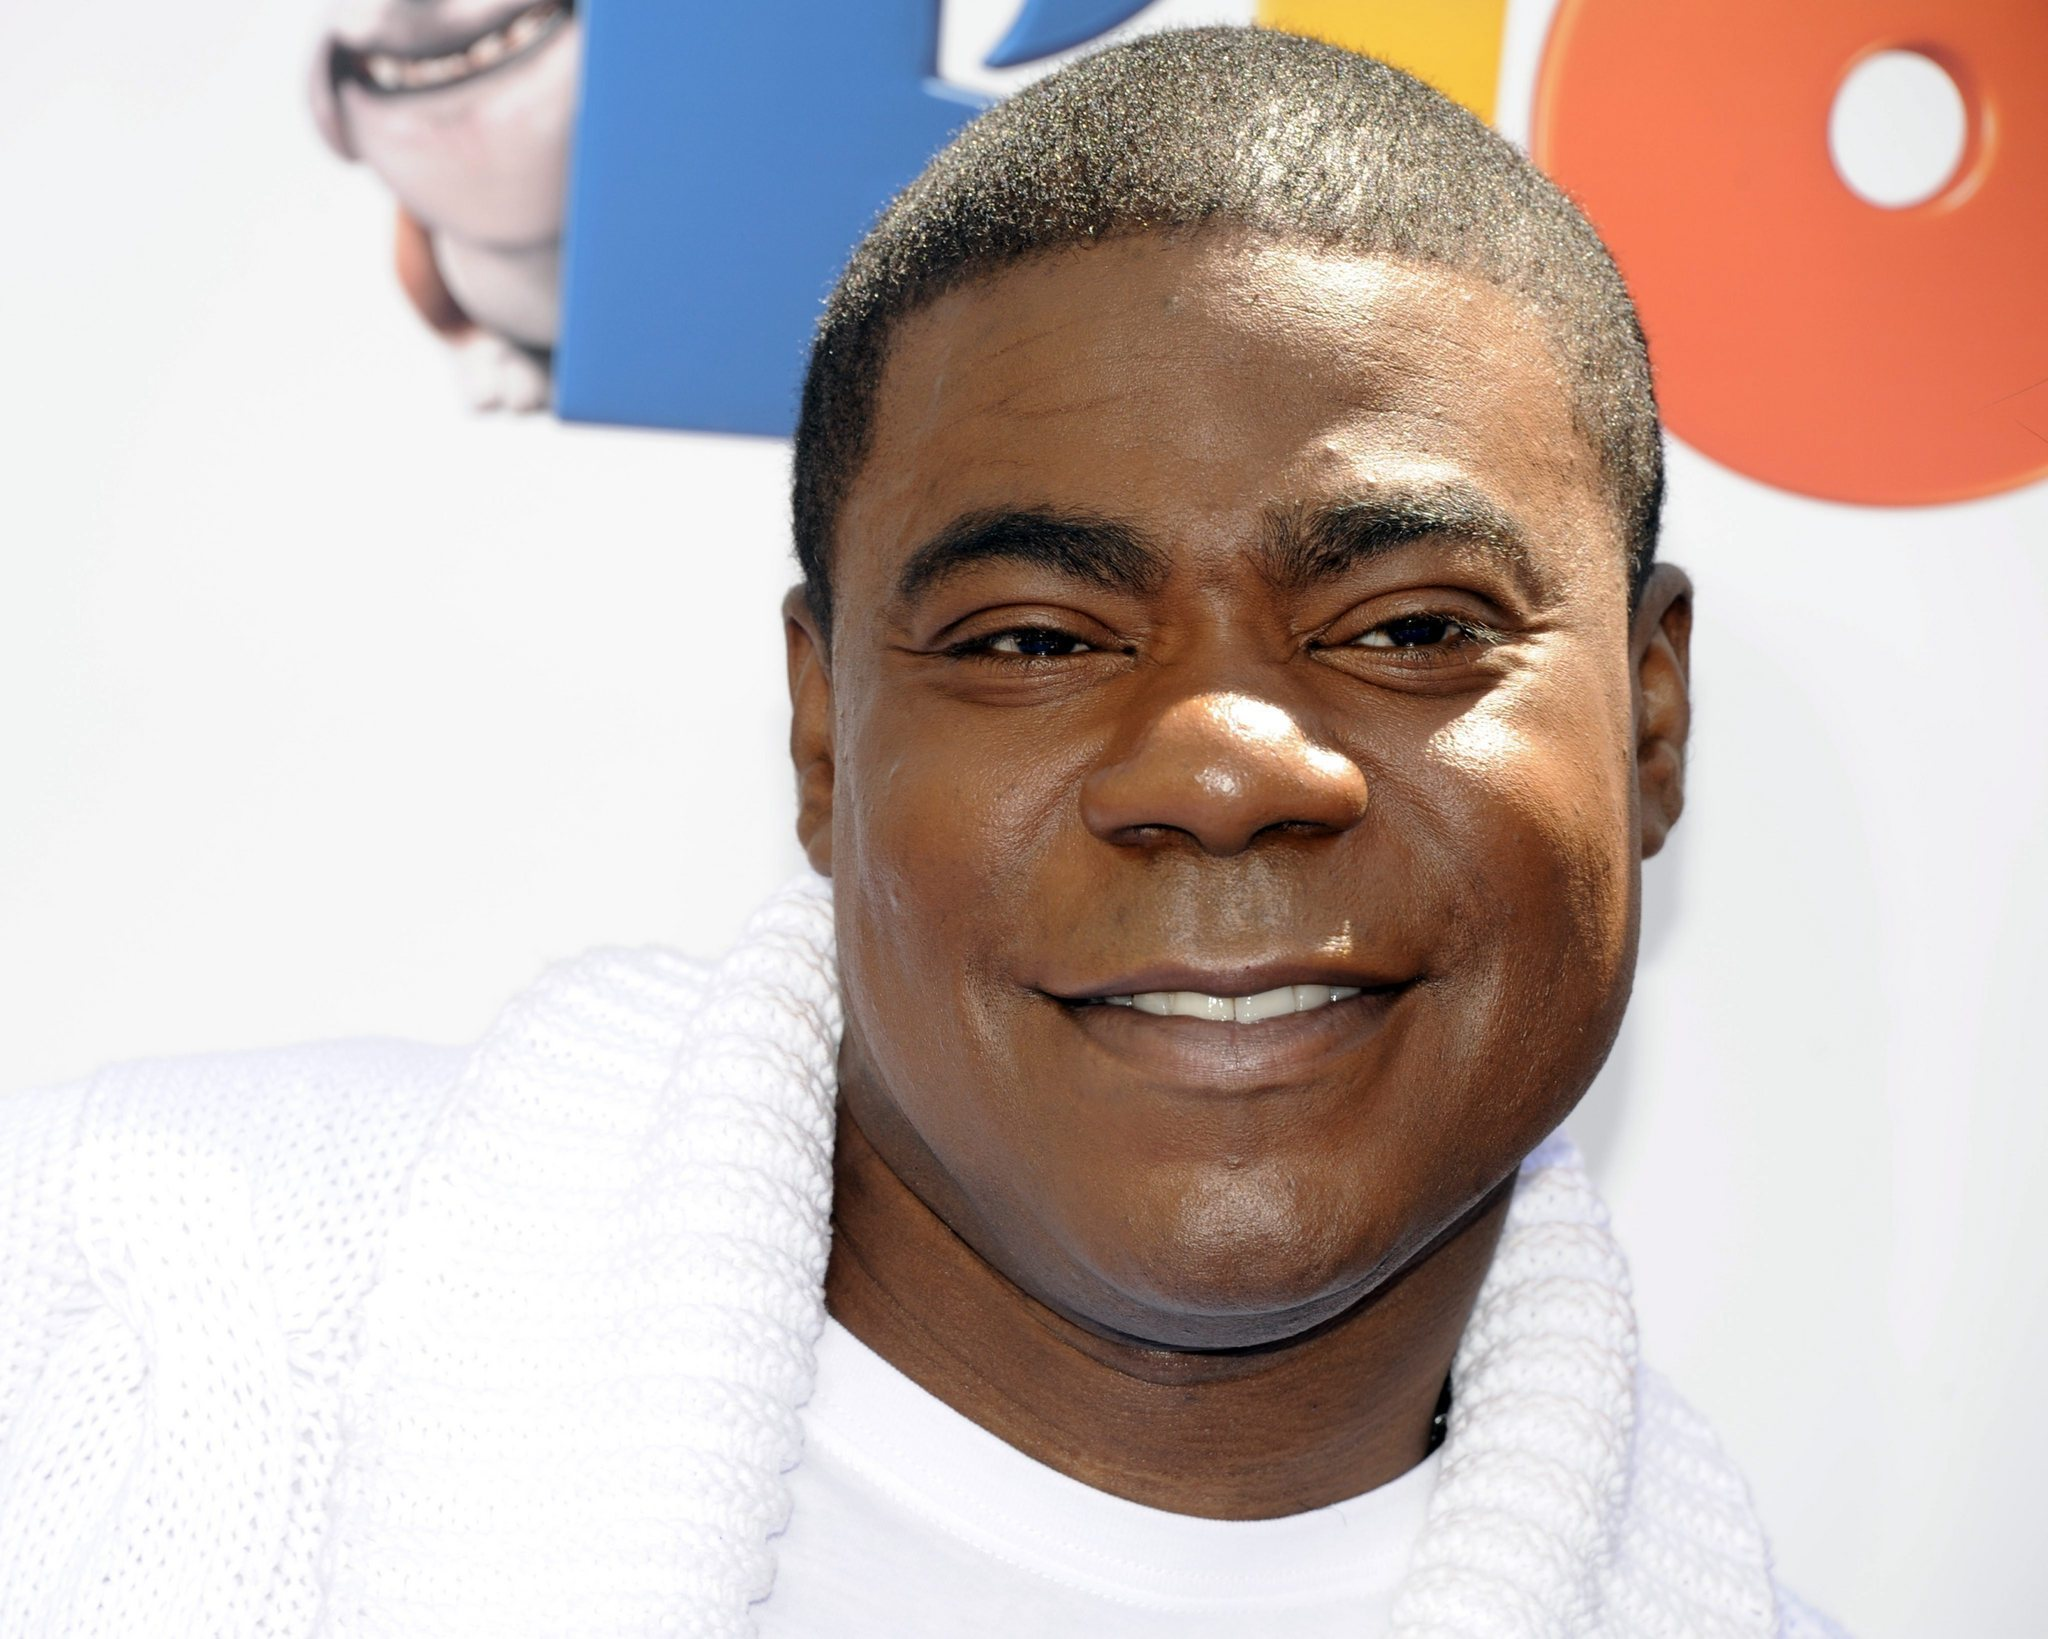 tracy morgan smile wallpaper photos 58579